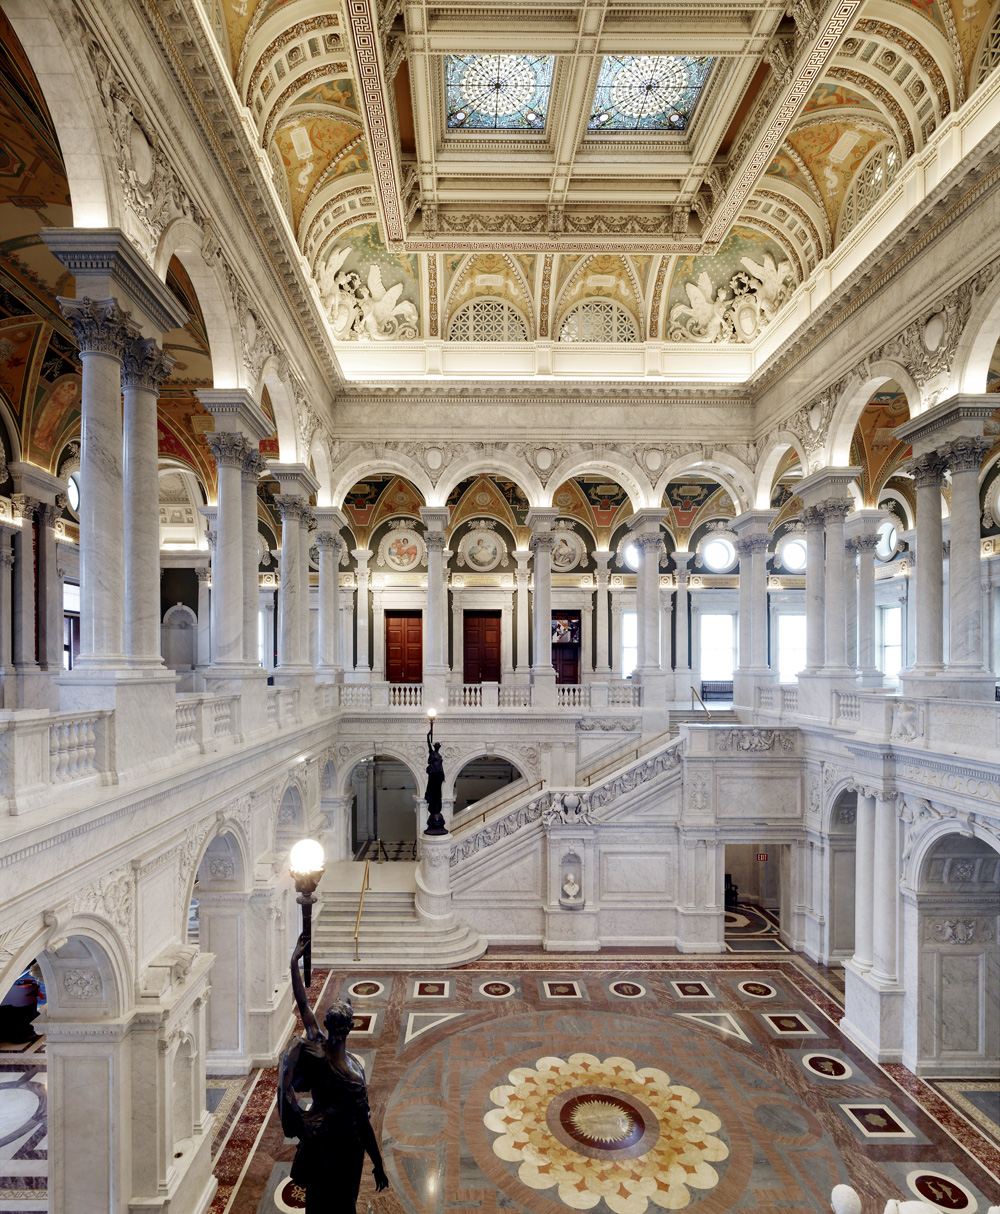 What Are The Names Of The Senate Office Buildings